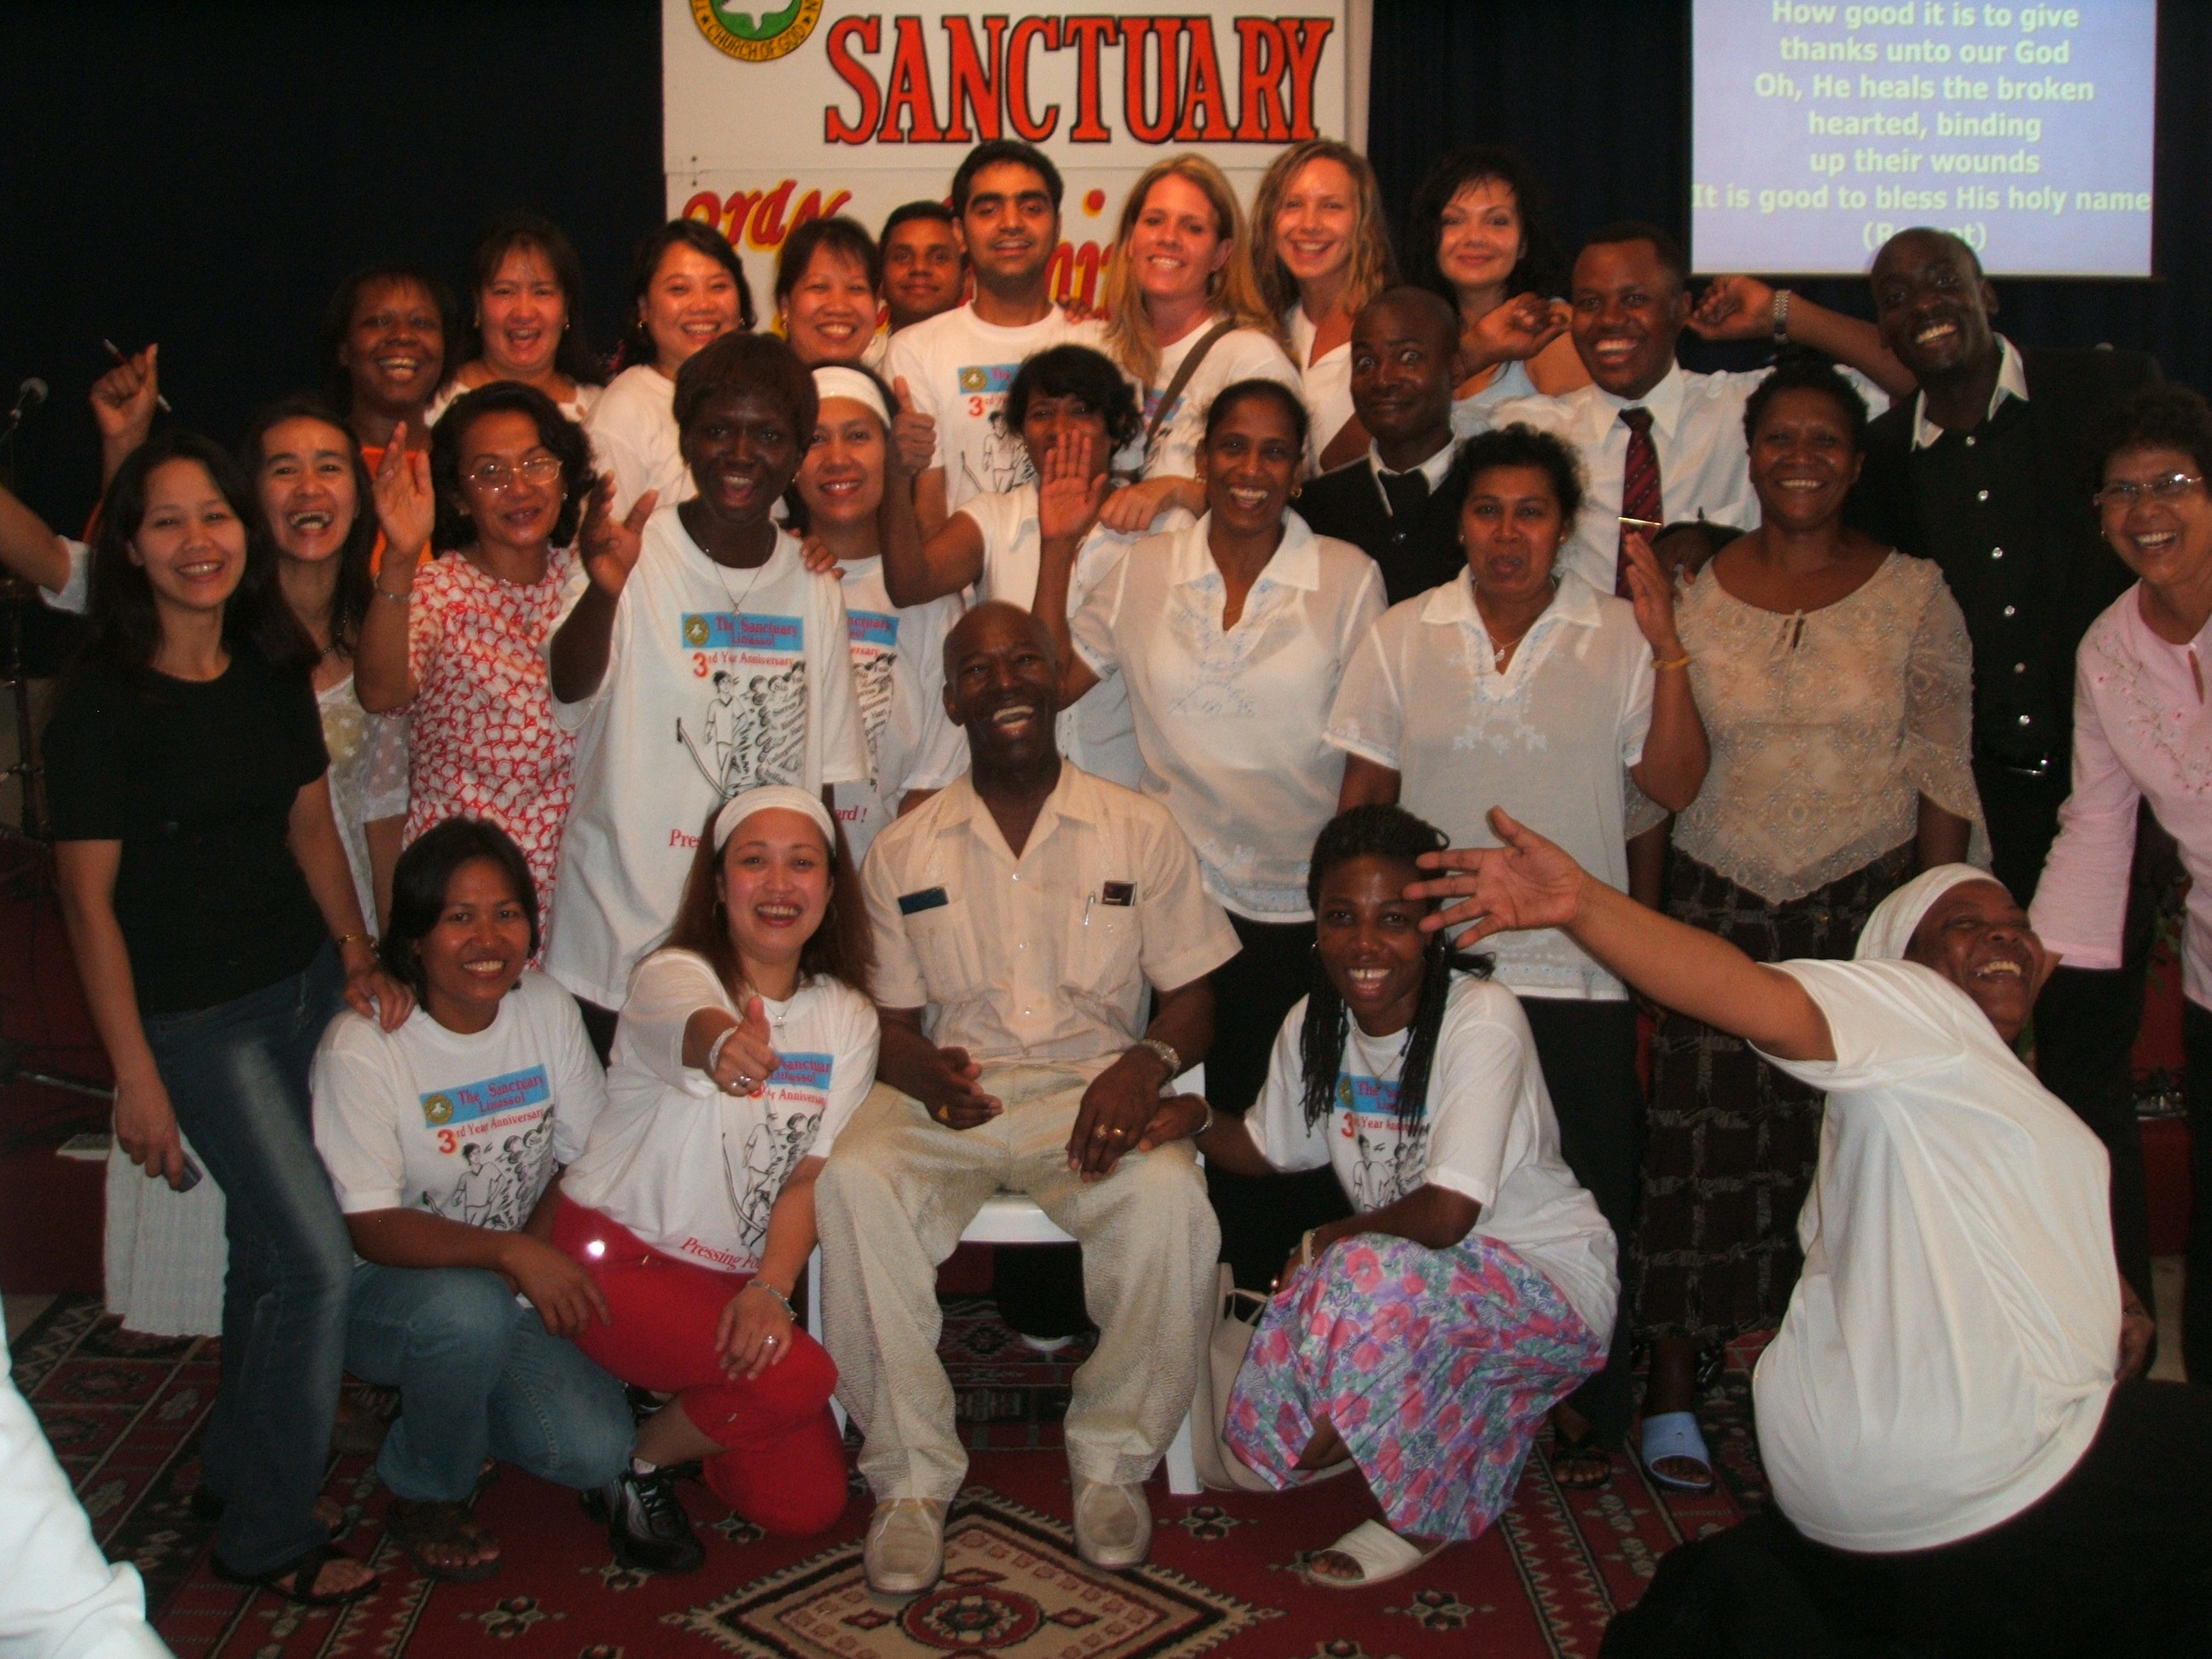 Apostle McFarlane during the Mission to Cyprus with some of the saints